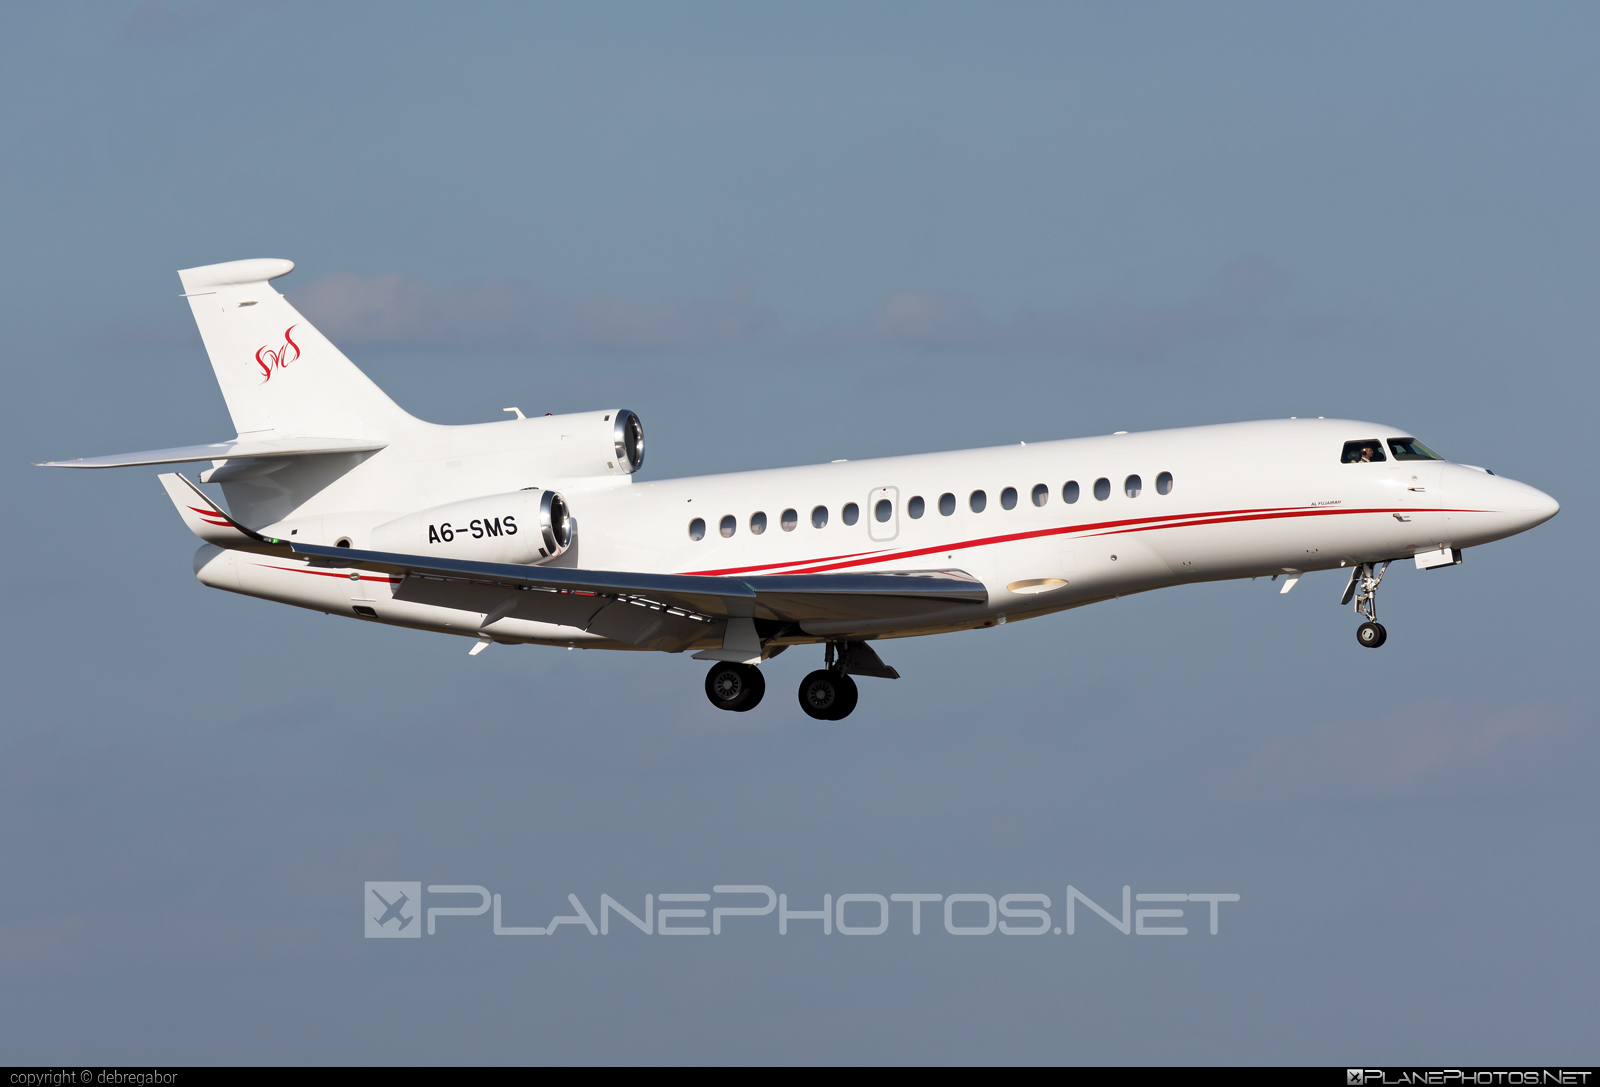 Dassault Falcon 8X - A6-SMS operated by Private operator #dassault #dassaultfalcon #dassaultfalcon8x #falcon8x